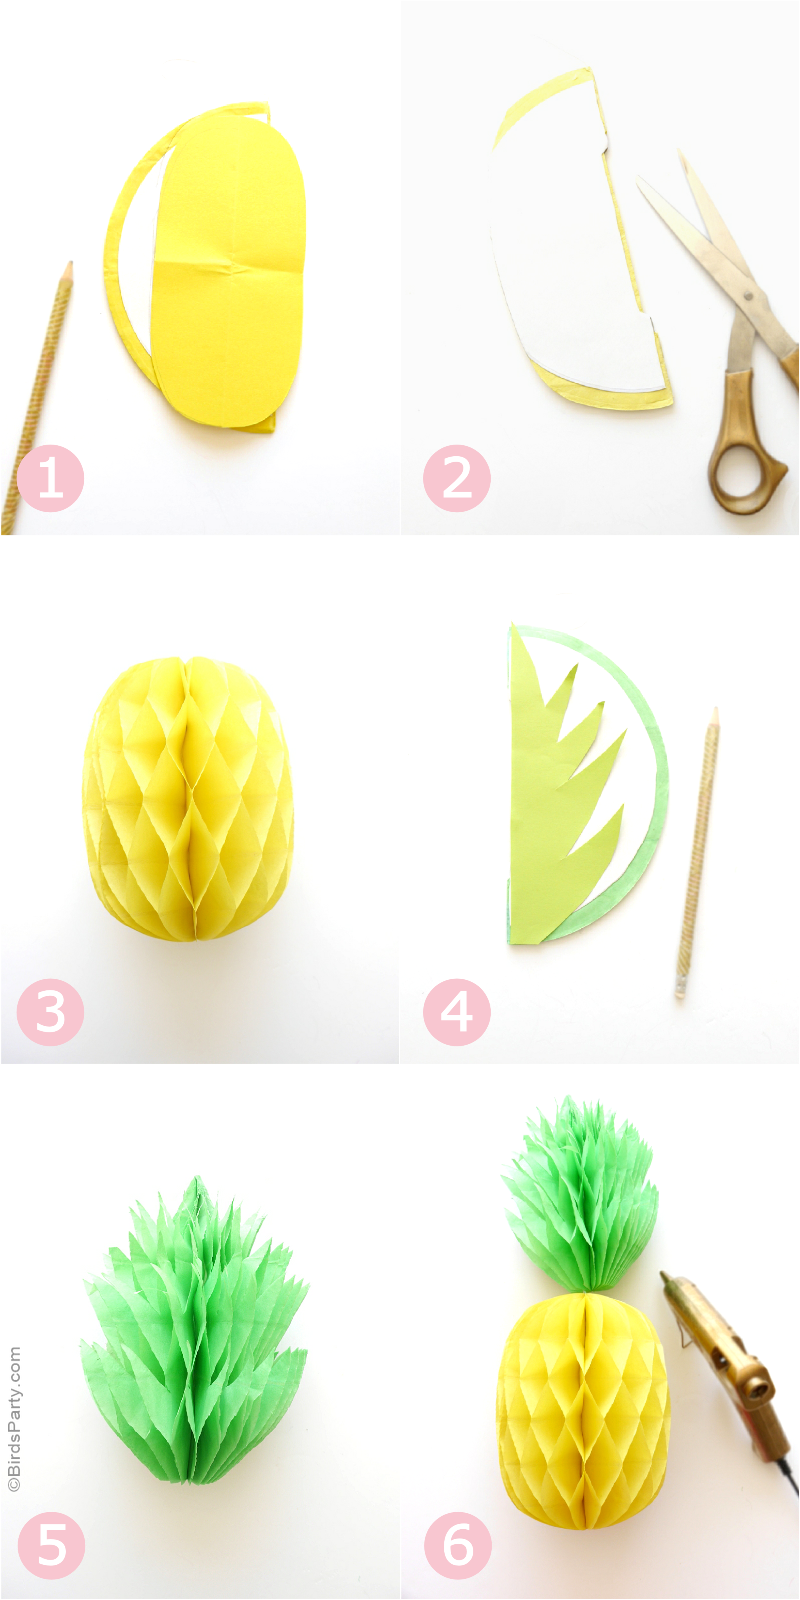 DIY Pineapple Honeycomb Party Decorations - BirdsParty.com